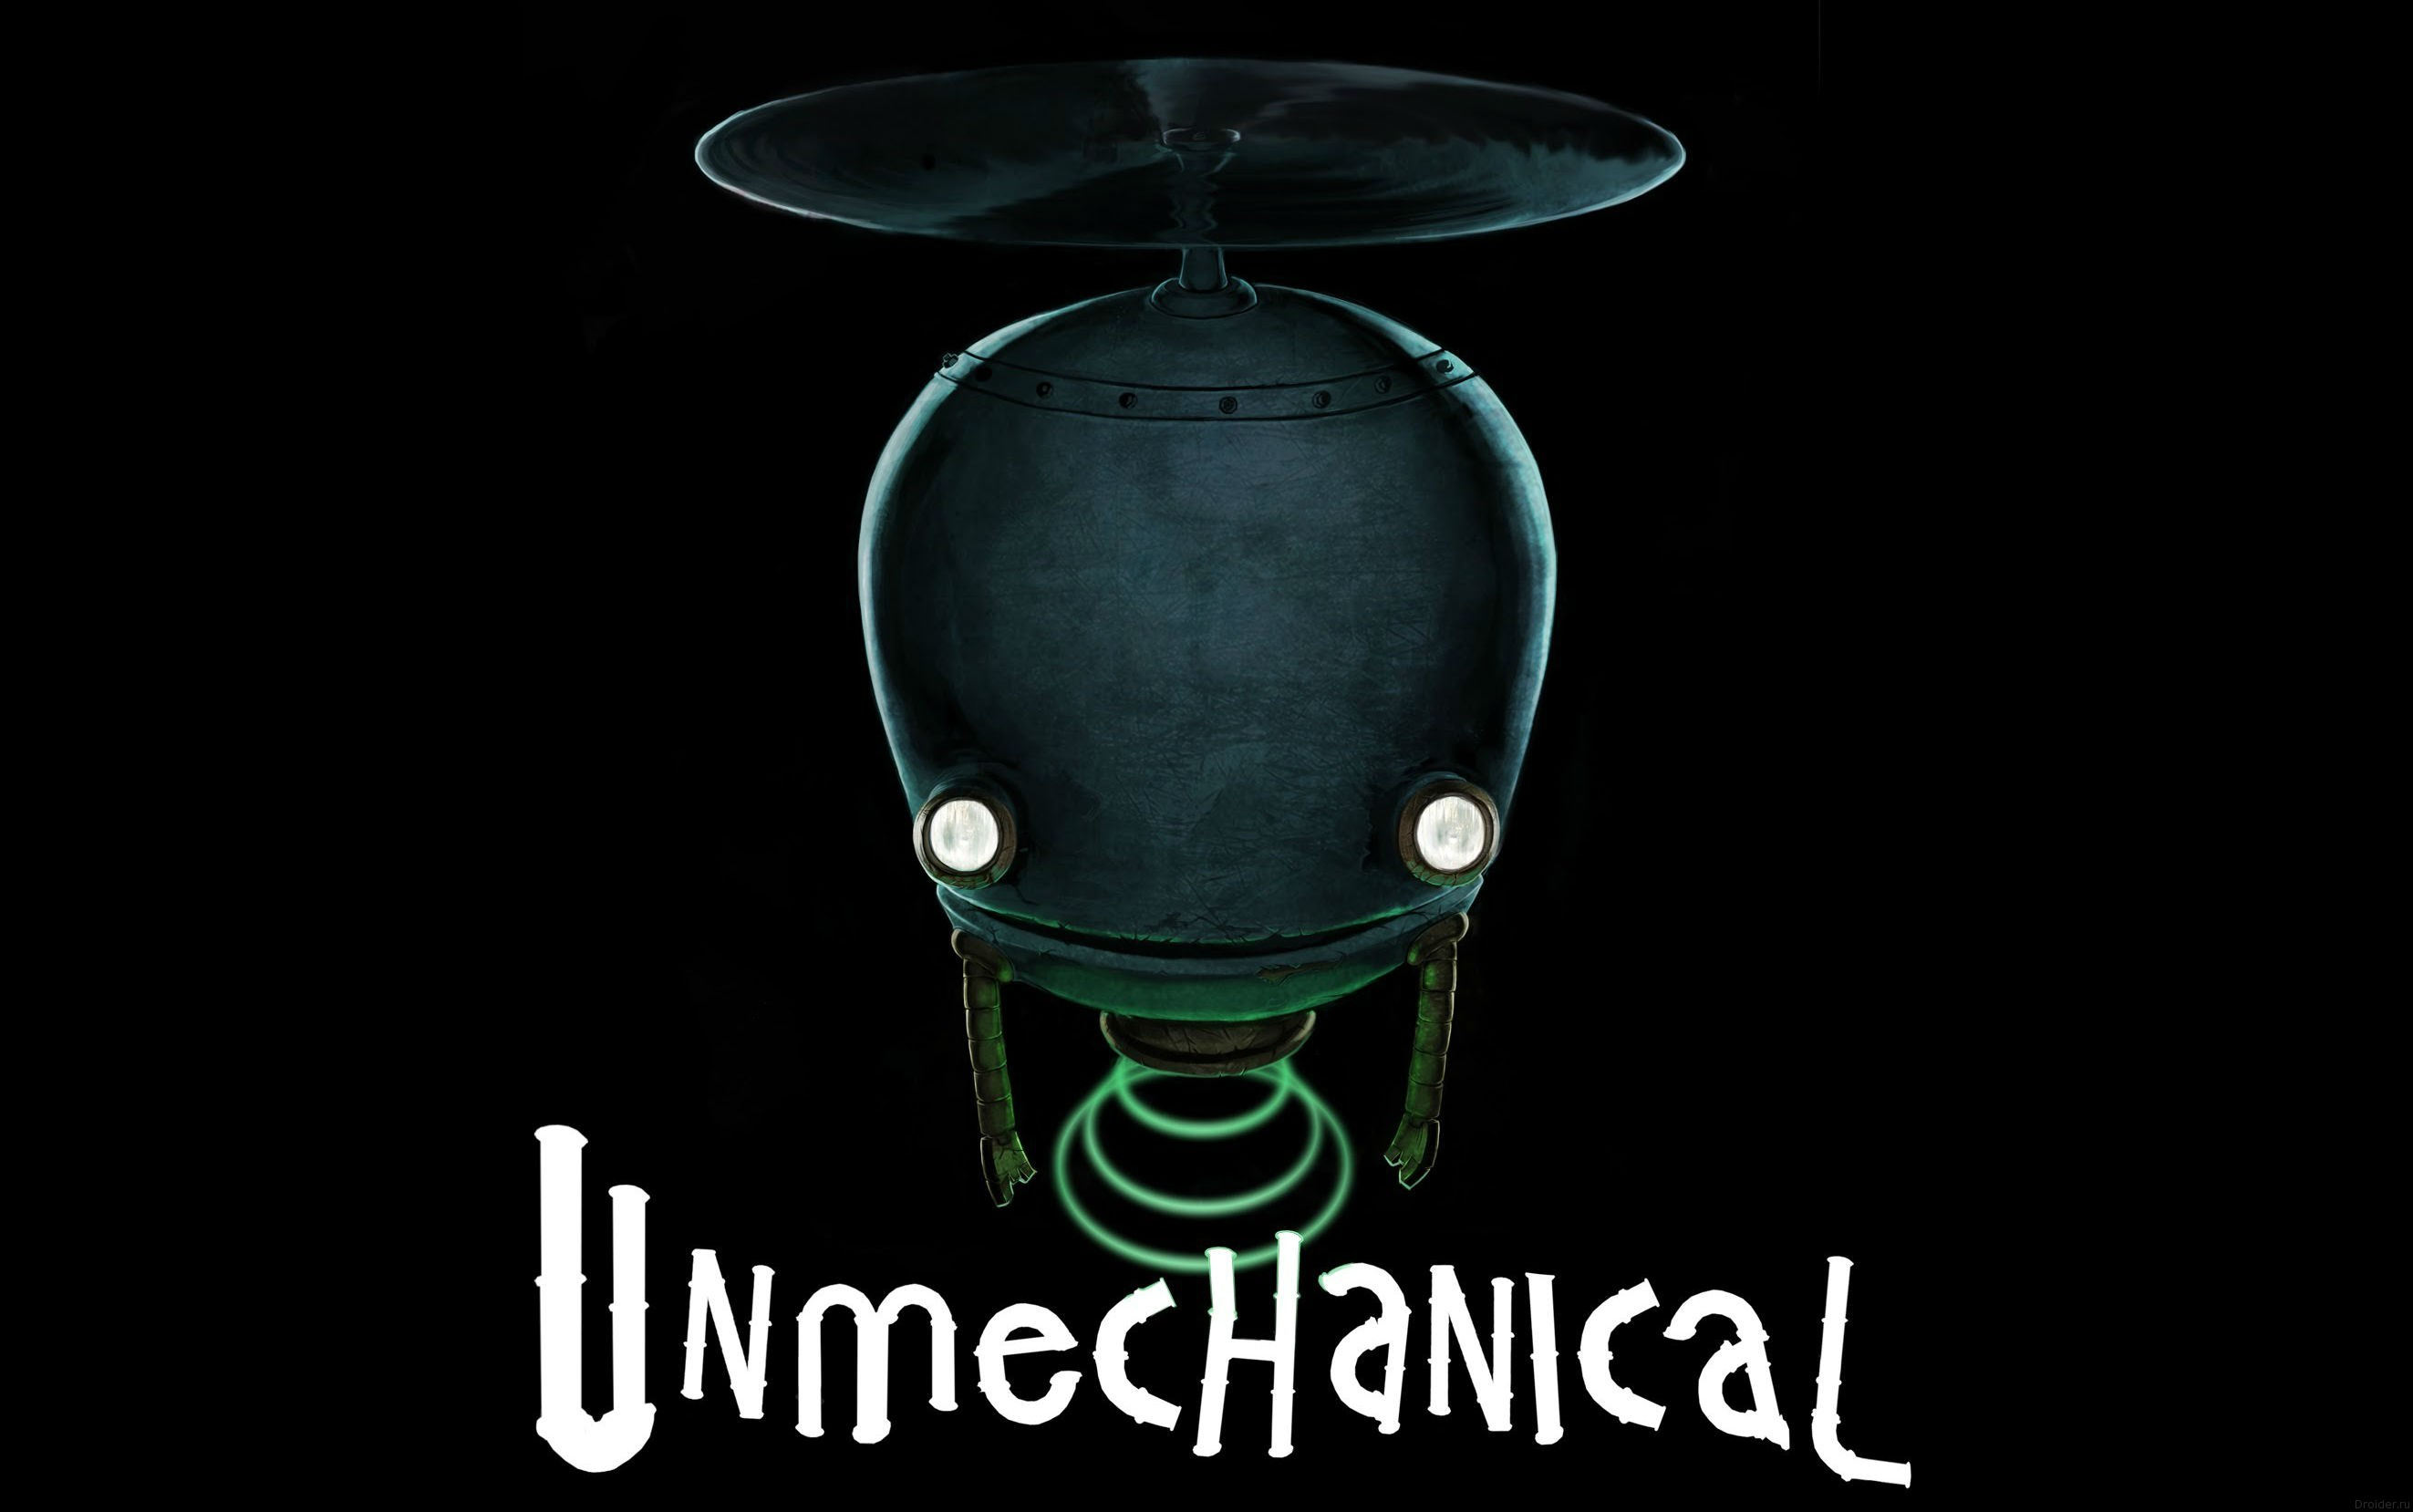 Головоломка Unmechanical появилась в Google Play